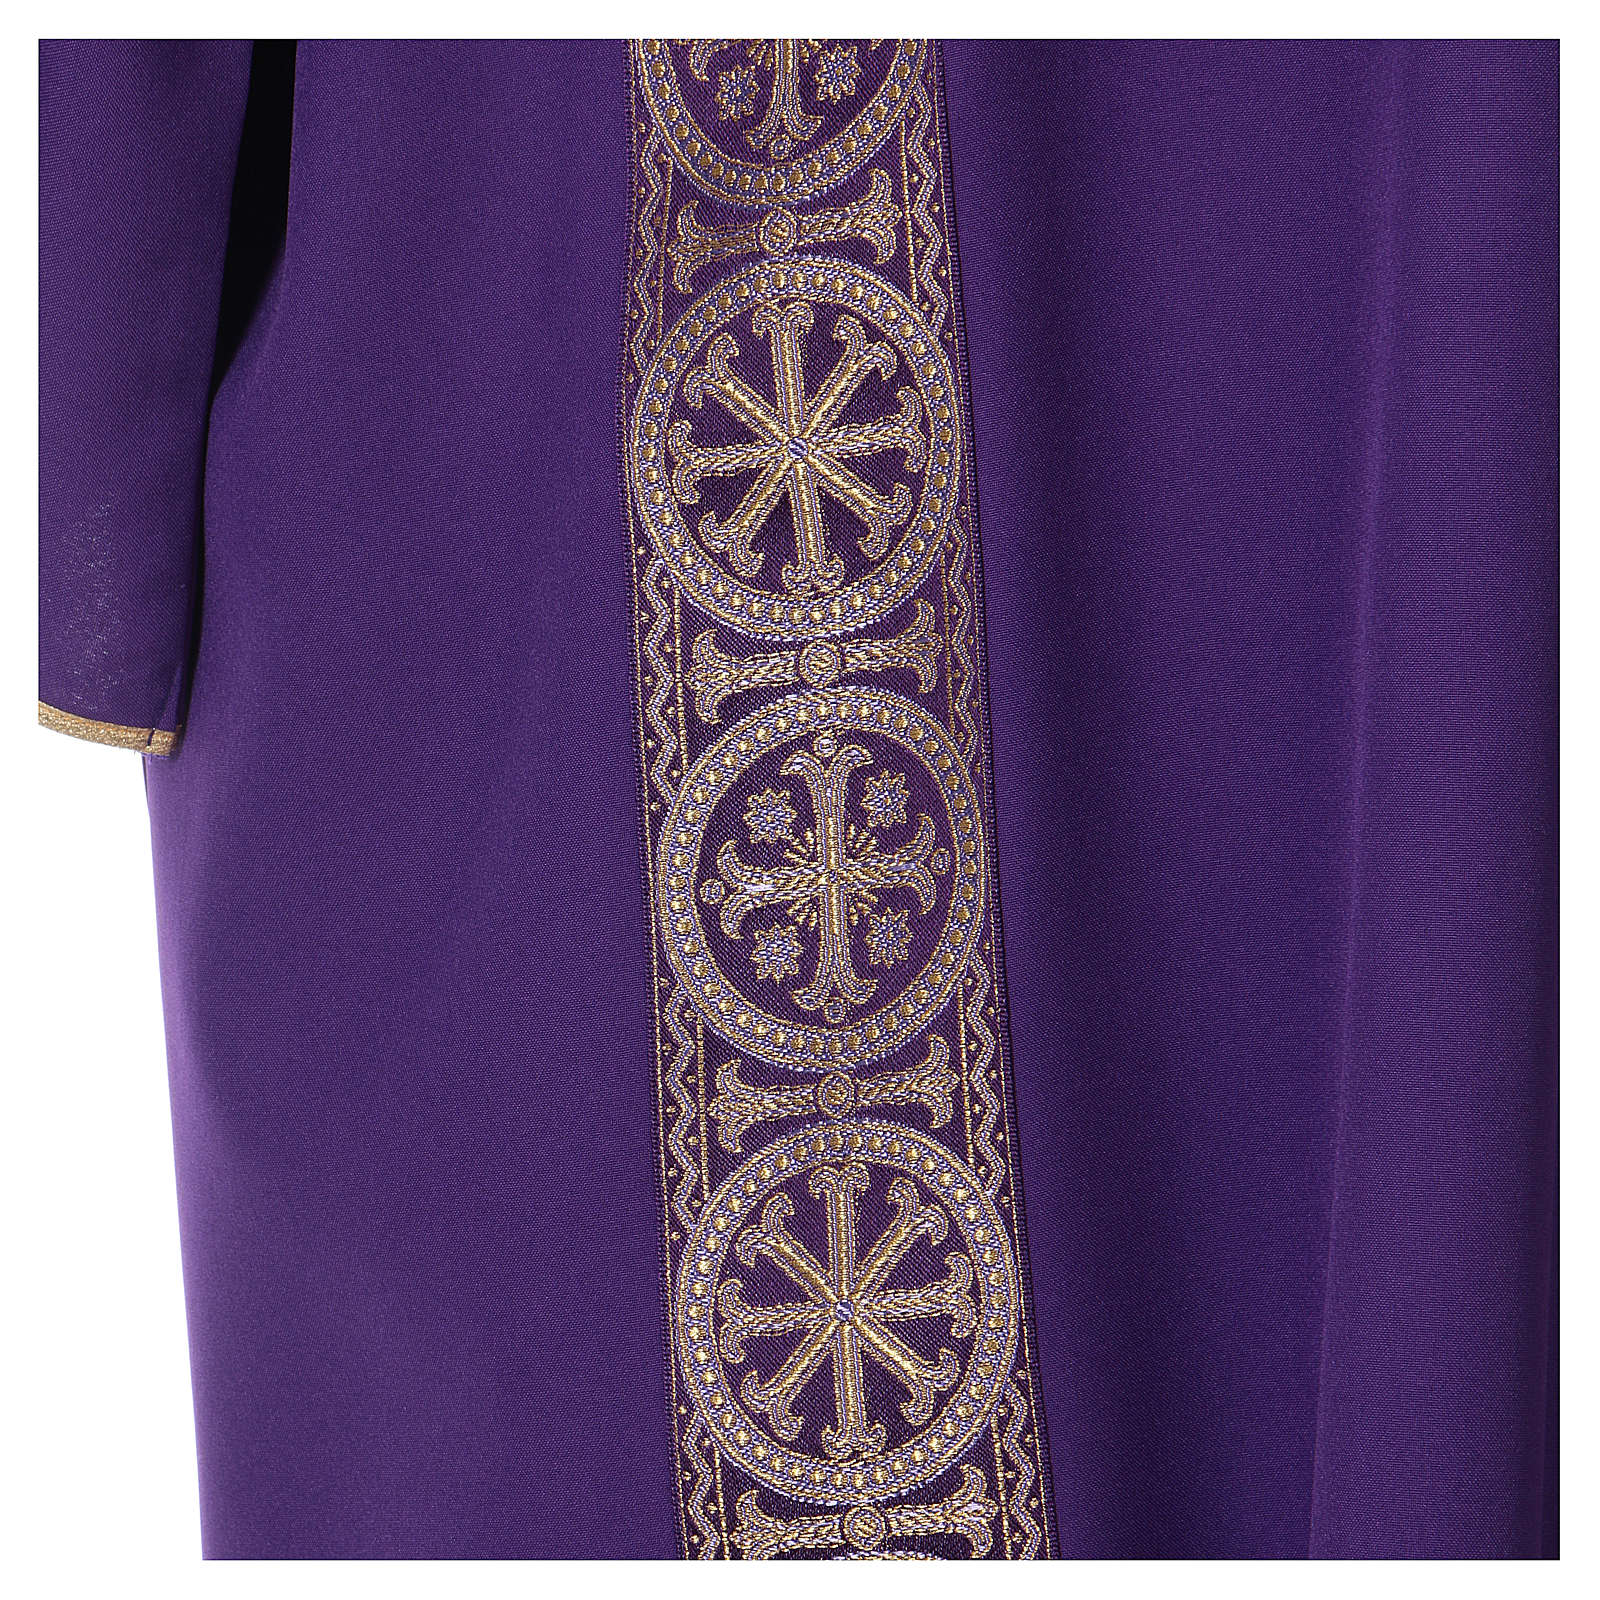 Dalmatic with decoration trim on front and back made in Vatican fabric 100% polyester 4